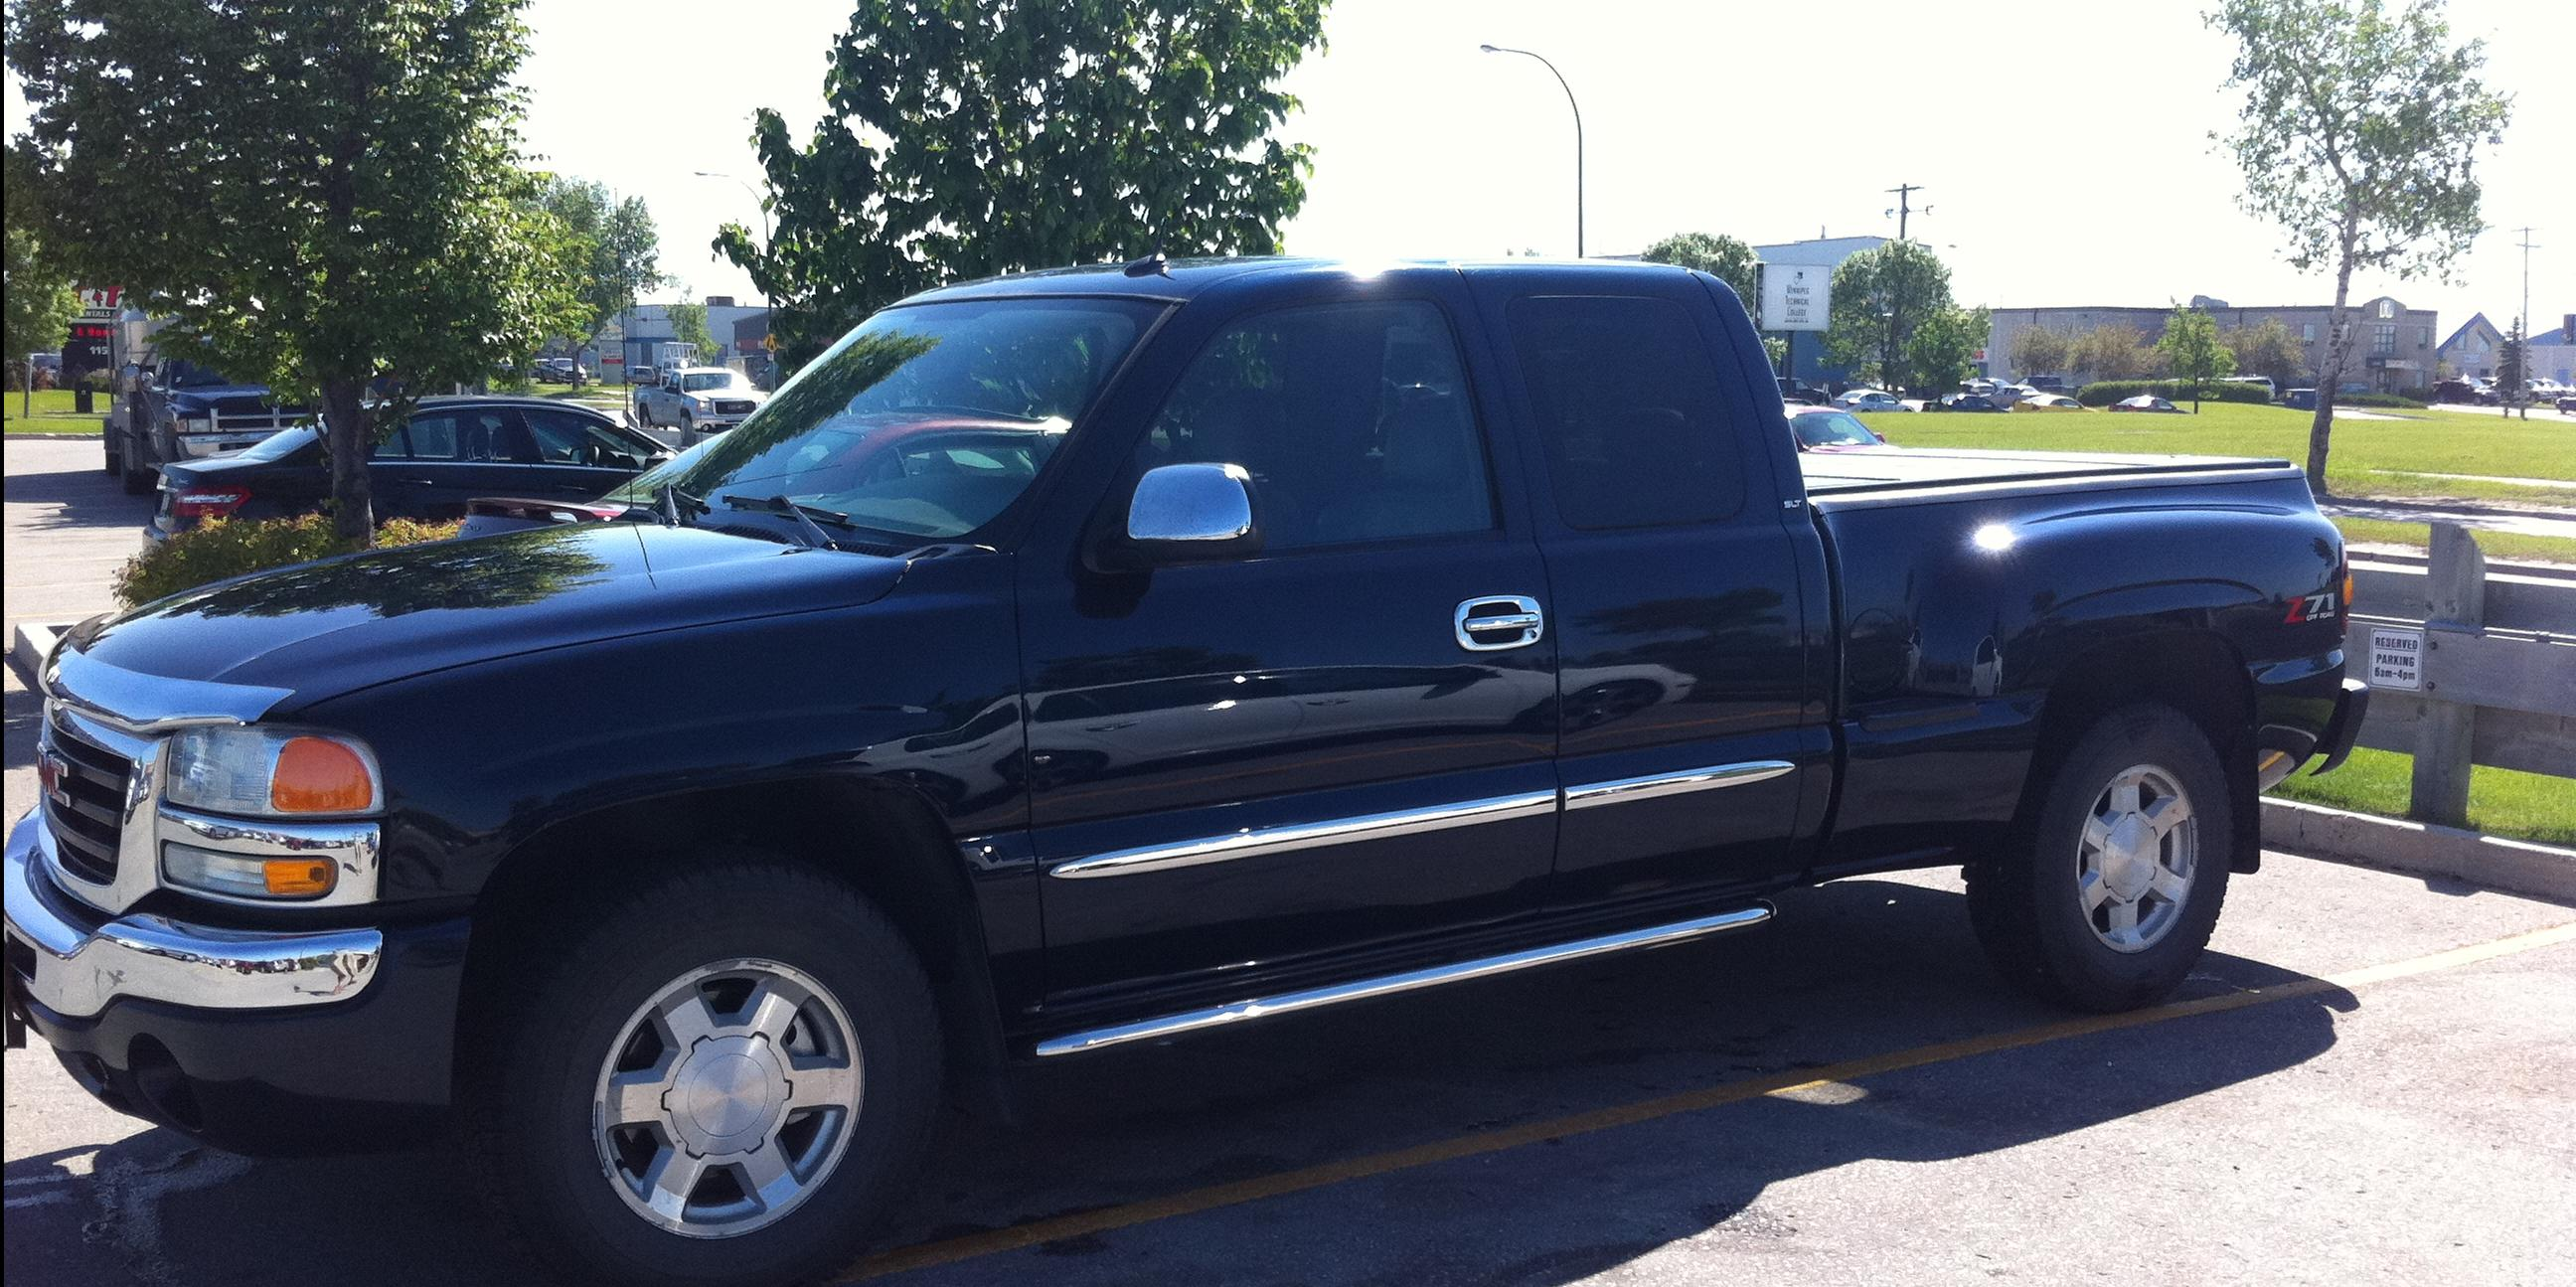 MattGMONLY 2005 GMC Sierra-(Classic)-1500-Extended-Cab